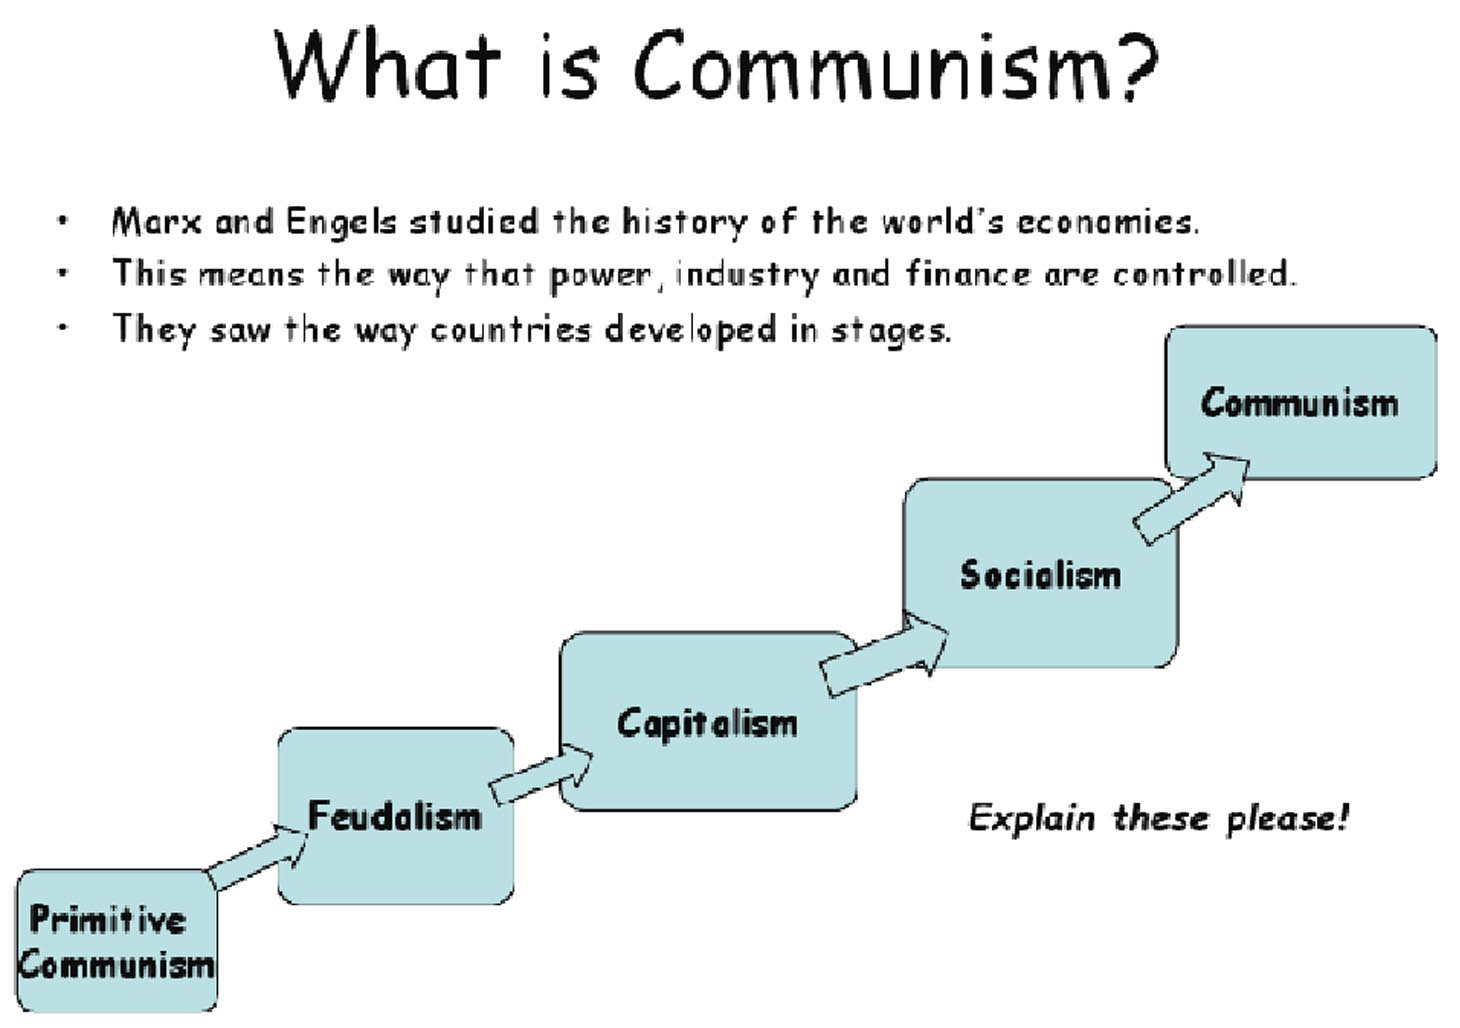 compare and contrast capitalism and socialism essay why not try compare and contrast capitalism and socialism essay why not try order a custom written essay from us